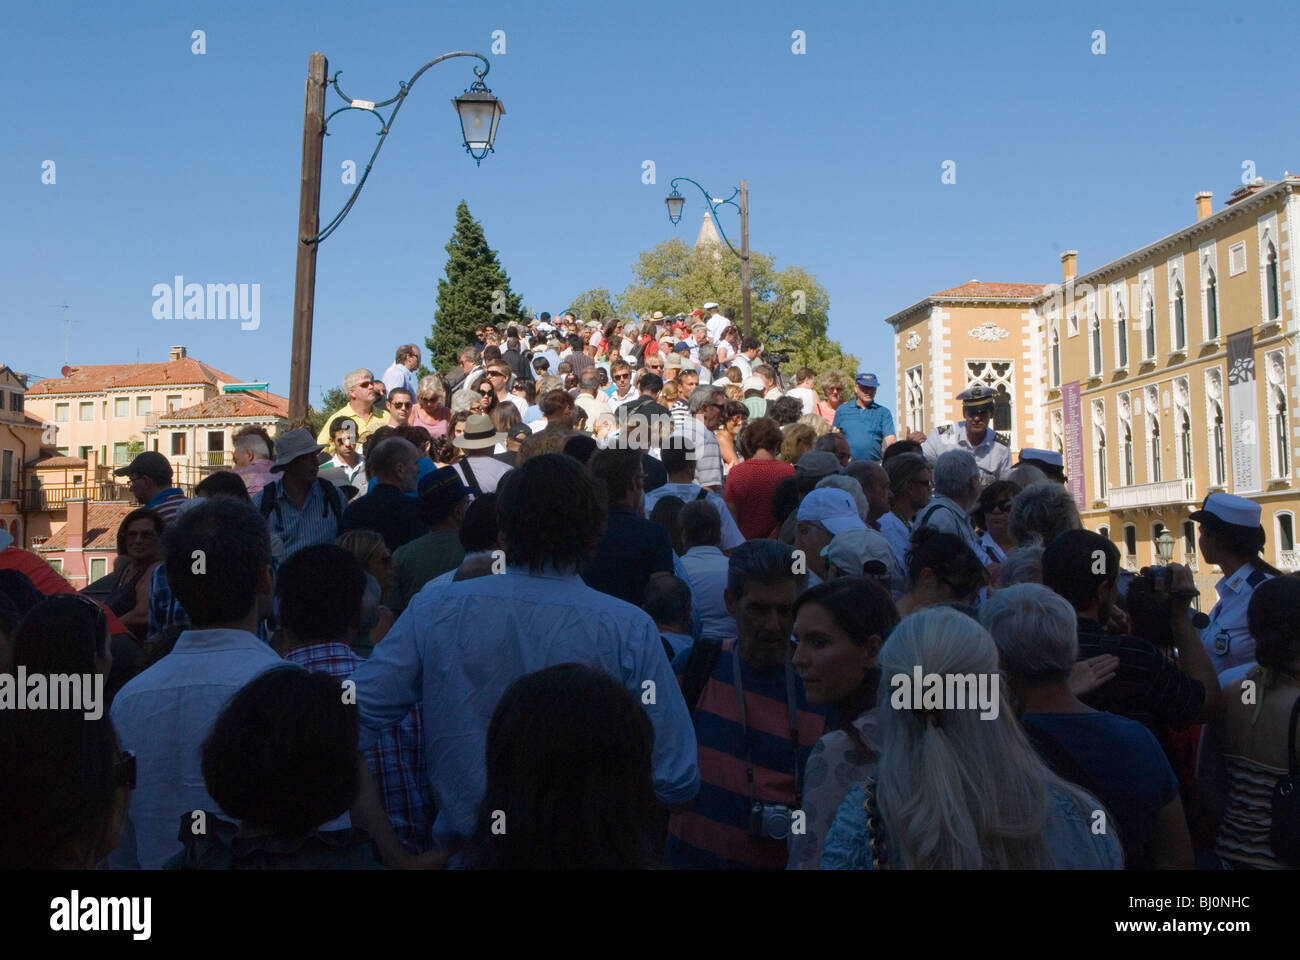 Crowds of tourists crossing the Accademia Bridge Venice Italy. HOMER SYKES - Stock Image